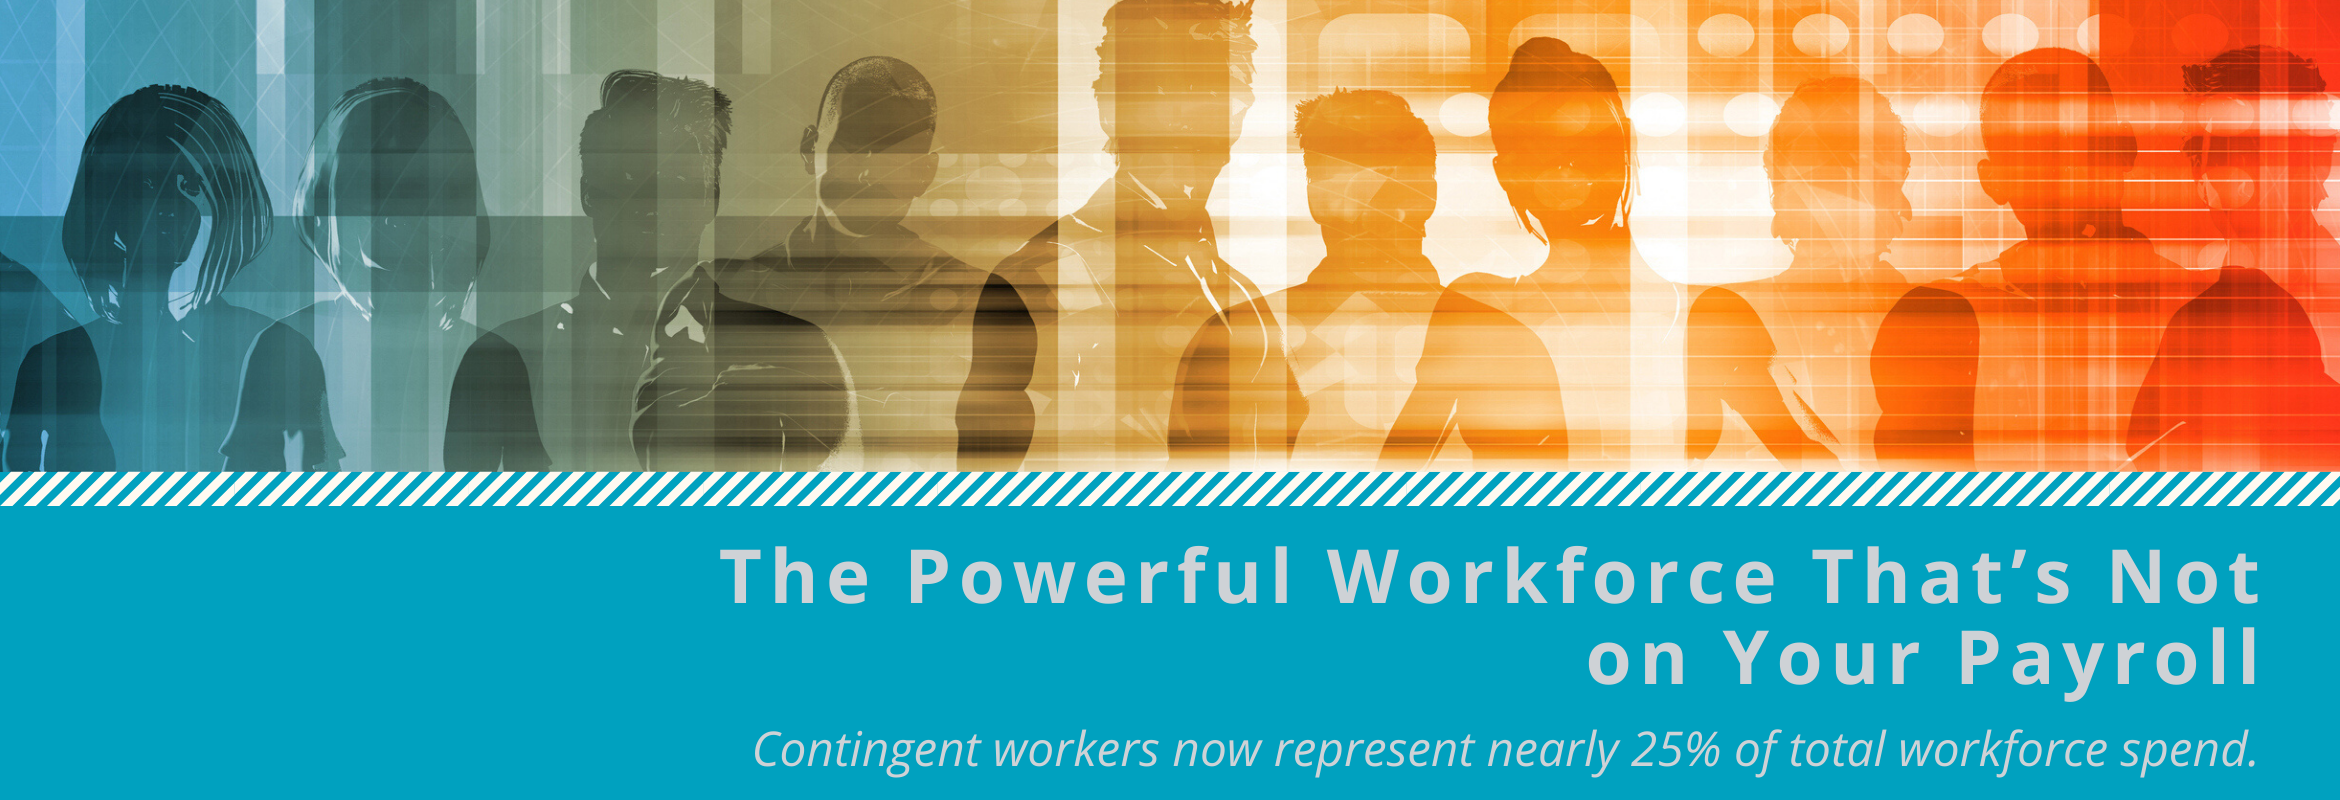 Contingent workers now represent nearly 25 percent of total workforce spend.